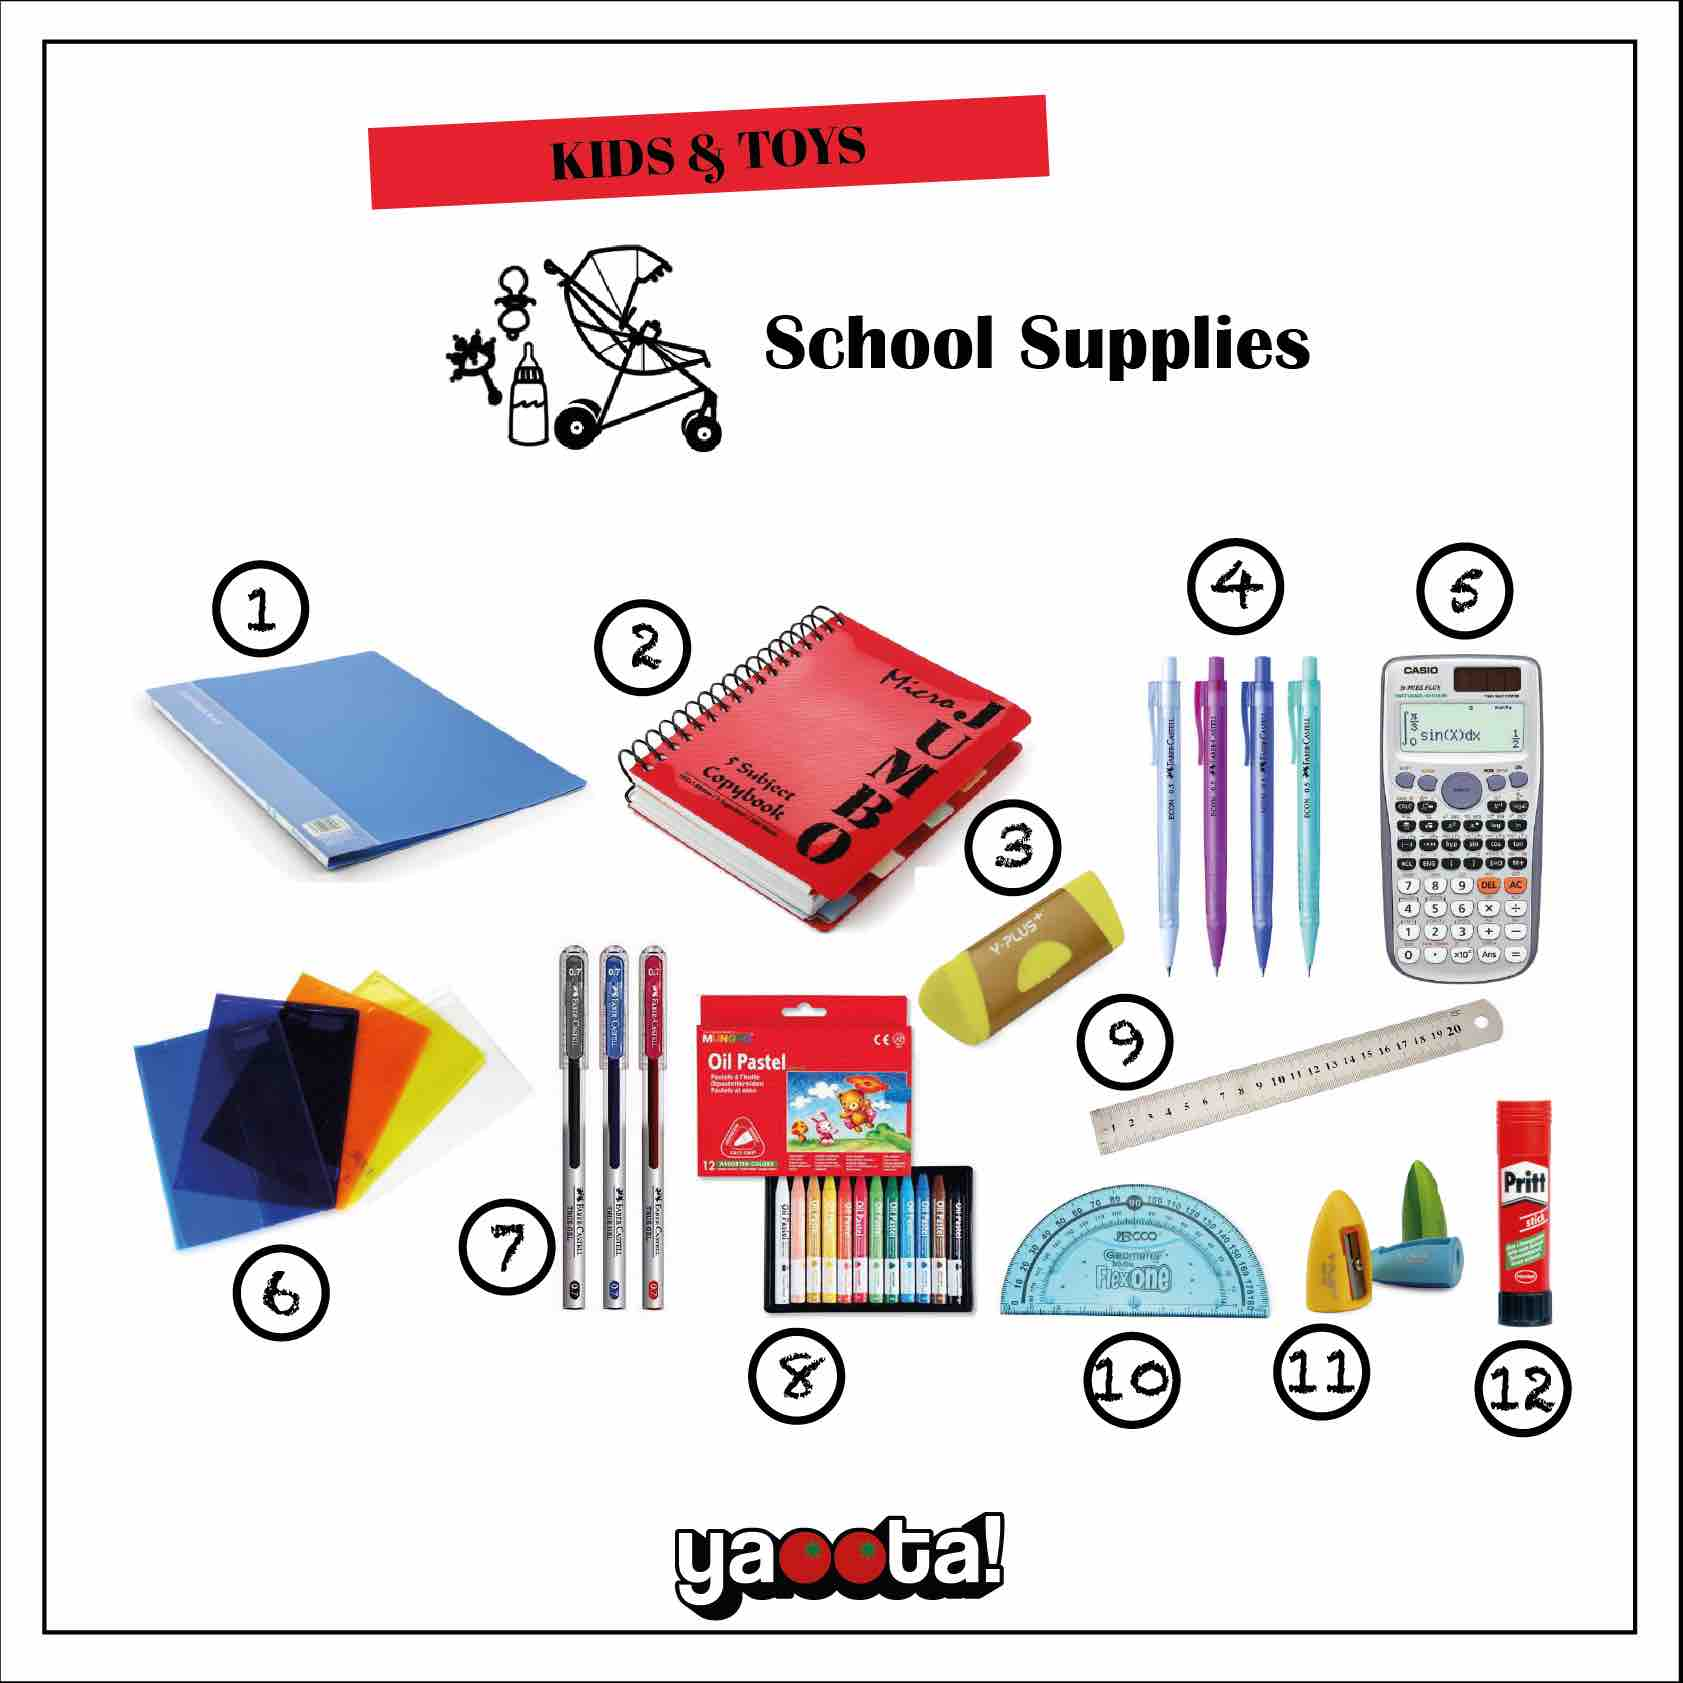 Guide to Buying School Supplies